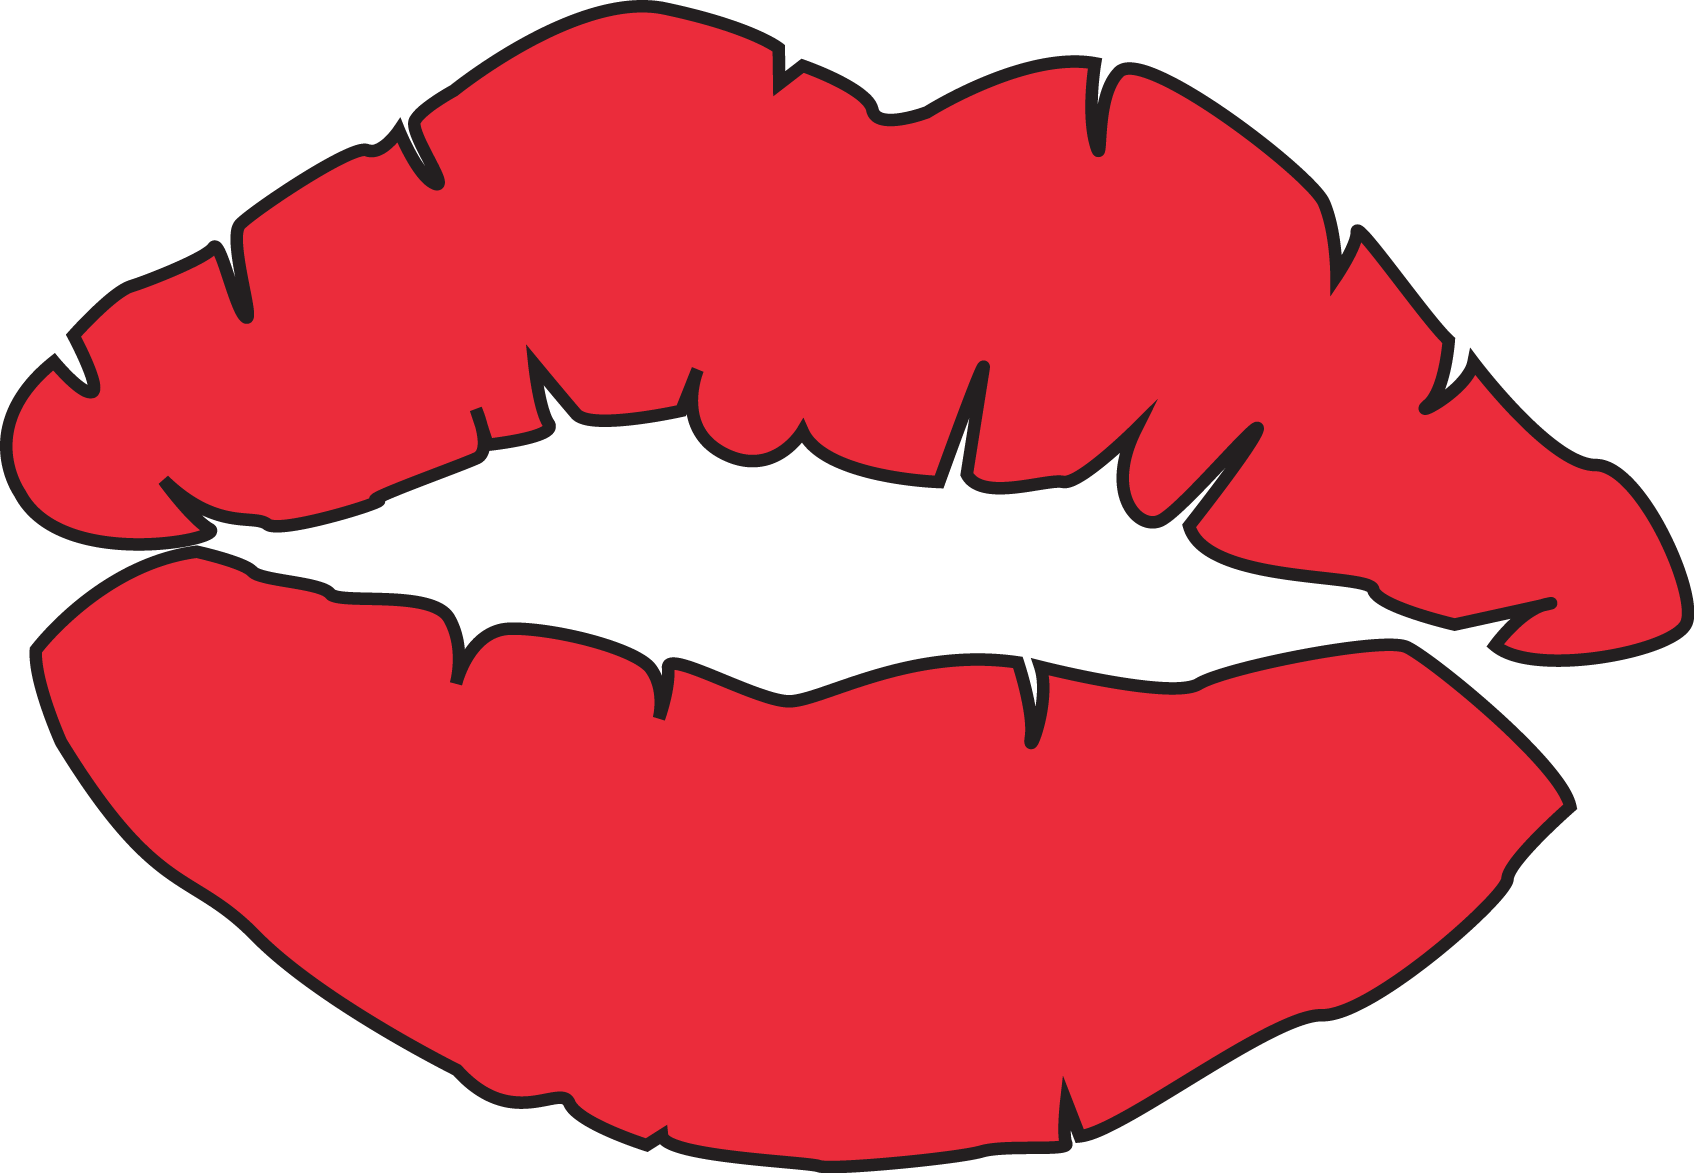 1694x1173 Red Kiss Lips Clipart Hairsstyles.co